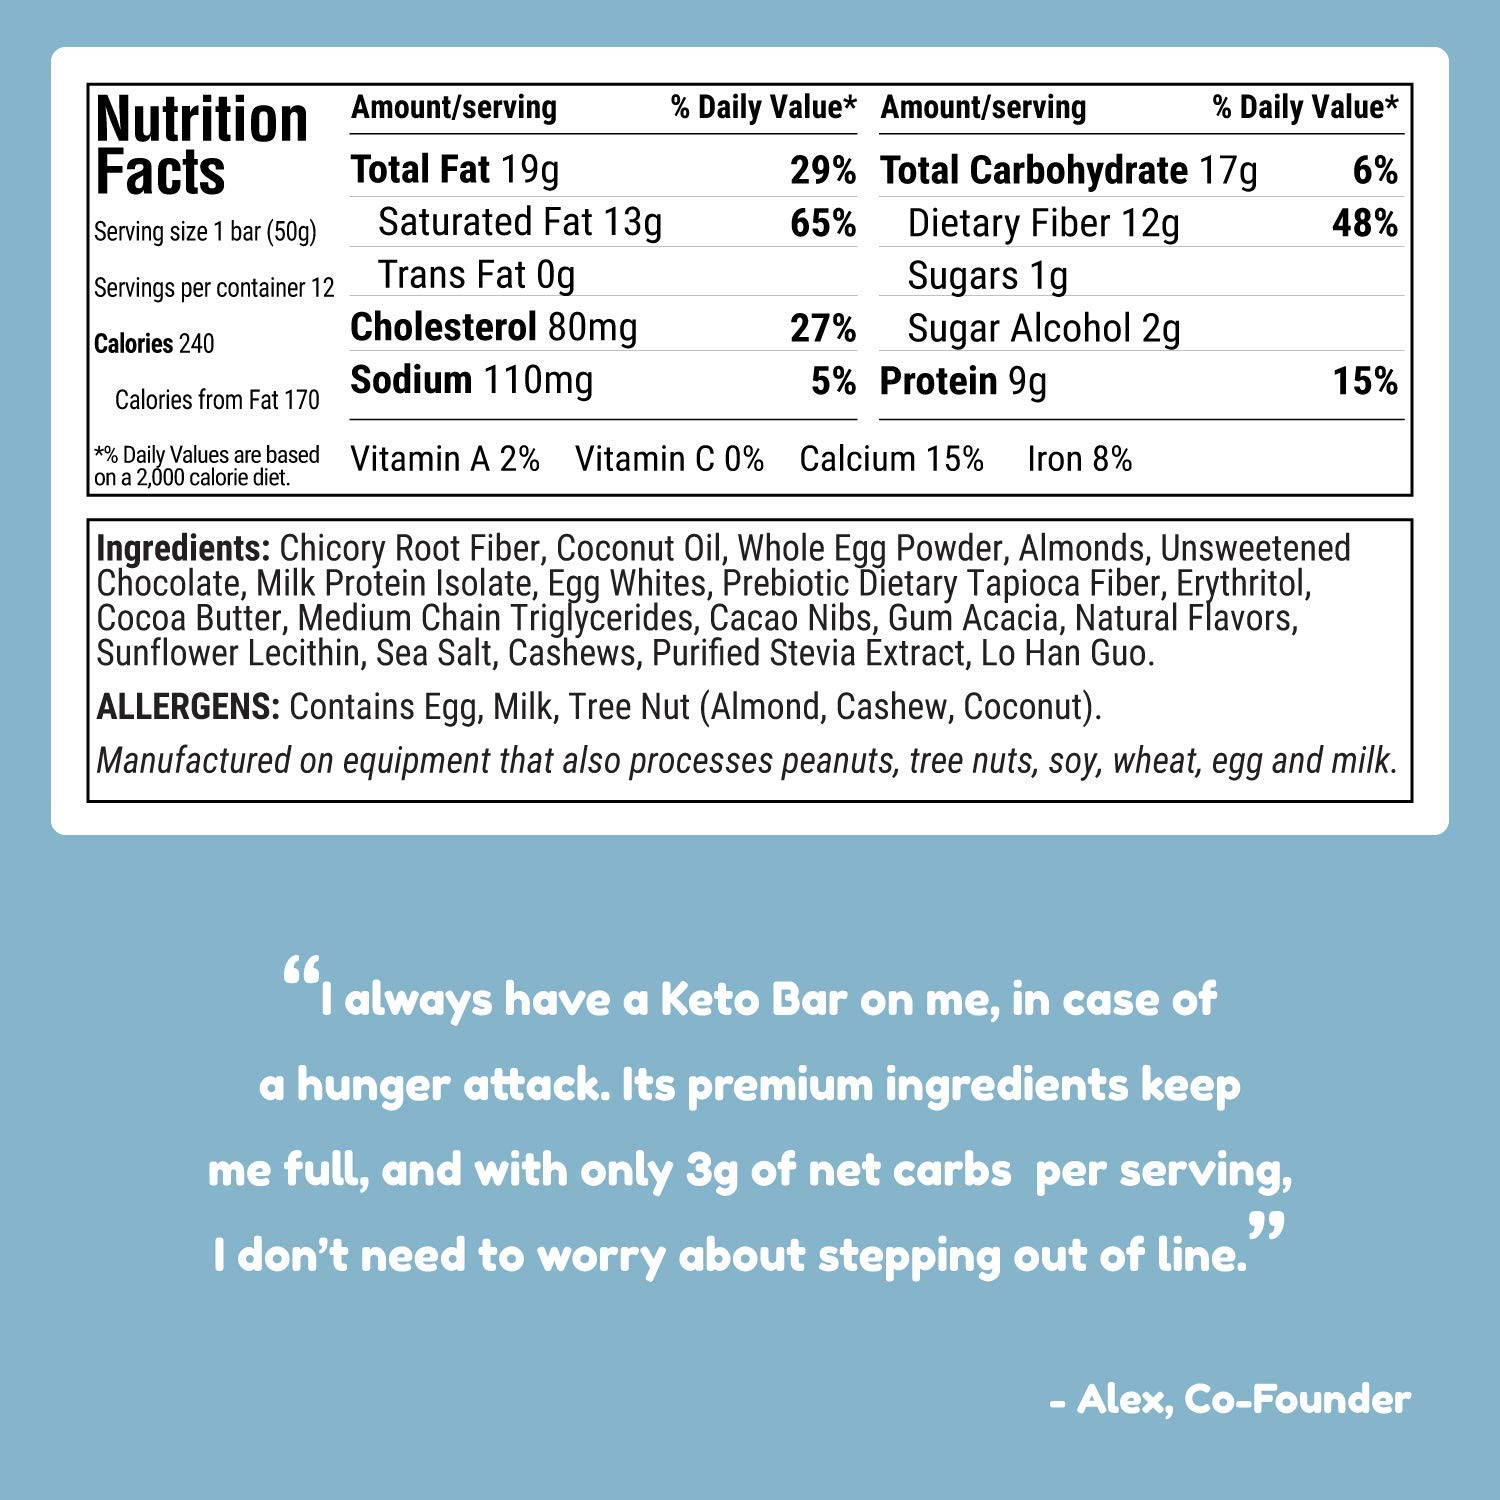 Kiss My Keto Snacks Keto Bars - Keto Chocolate Cookie Dough, Nutritional Keto Food Bars, Paleo, Low Carb/Glycemic Keto Friendly Foods, All Natural On-The-Go Snacks, Quality Fat Bars, 3g Net Carbs by Kiss My Keto (Image #5)